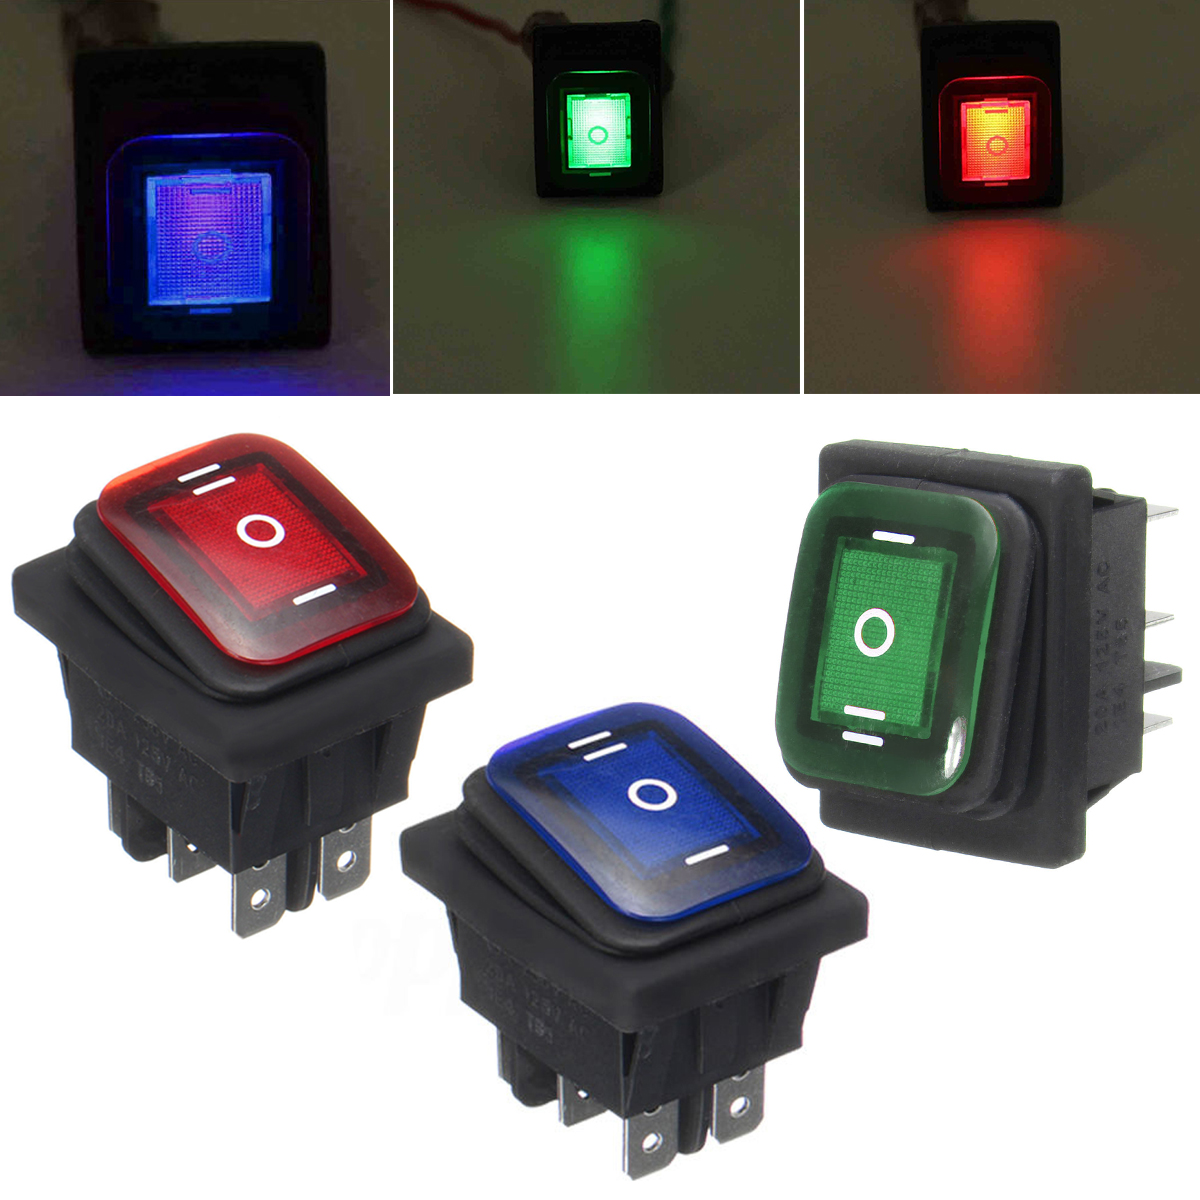 1pc/2pcs Durable Rocker Toggle Switch Mayitr On-Off-On 6 Pins 12V DC Car Boat Automobiles Waterproof LED Latching Switches 5pcs lot high quality 2 pin snap in on off position snap boat button switch 12v 110v 250v t1405 p0 5